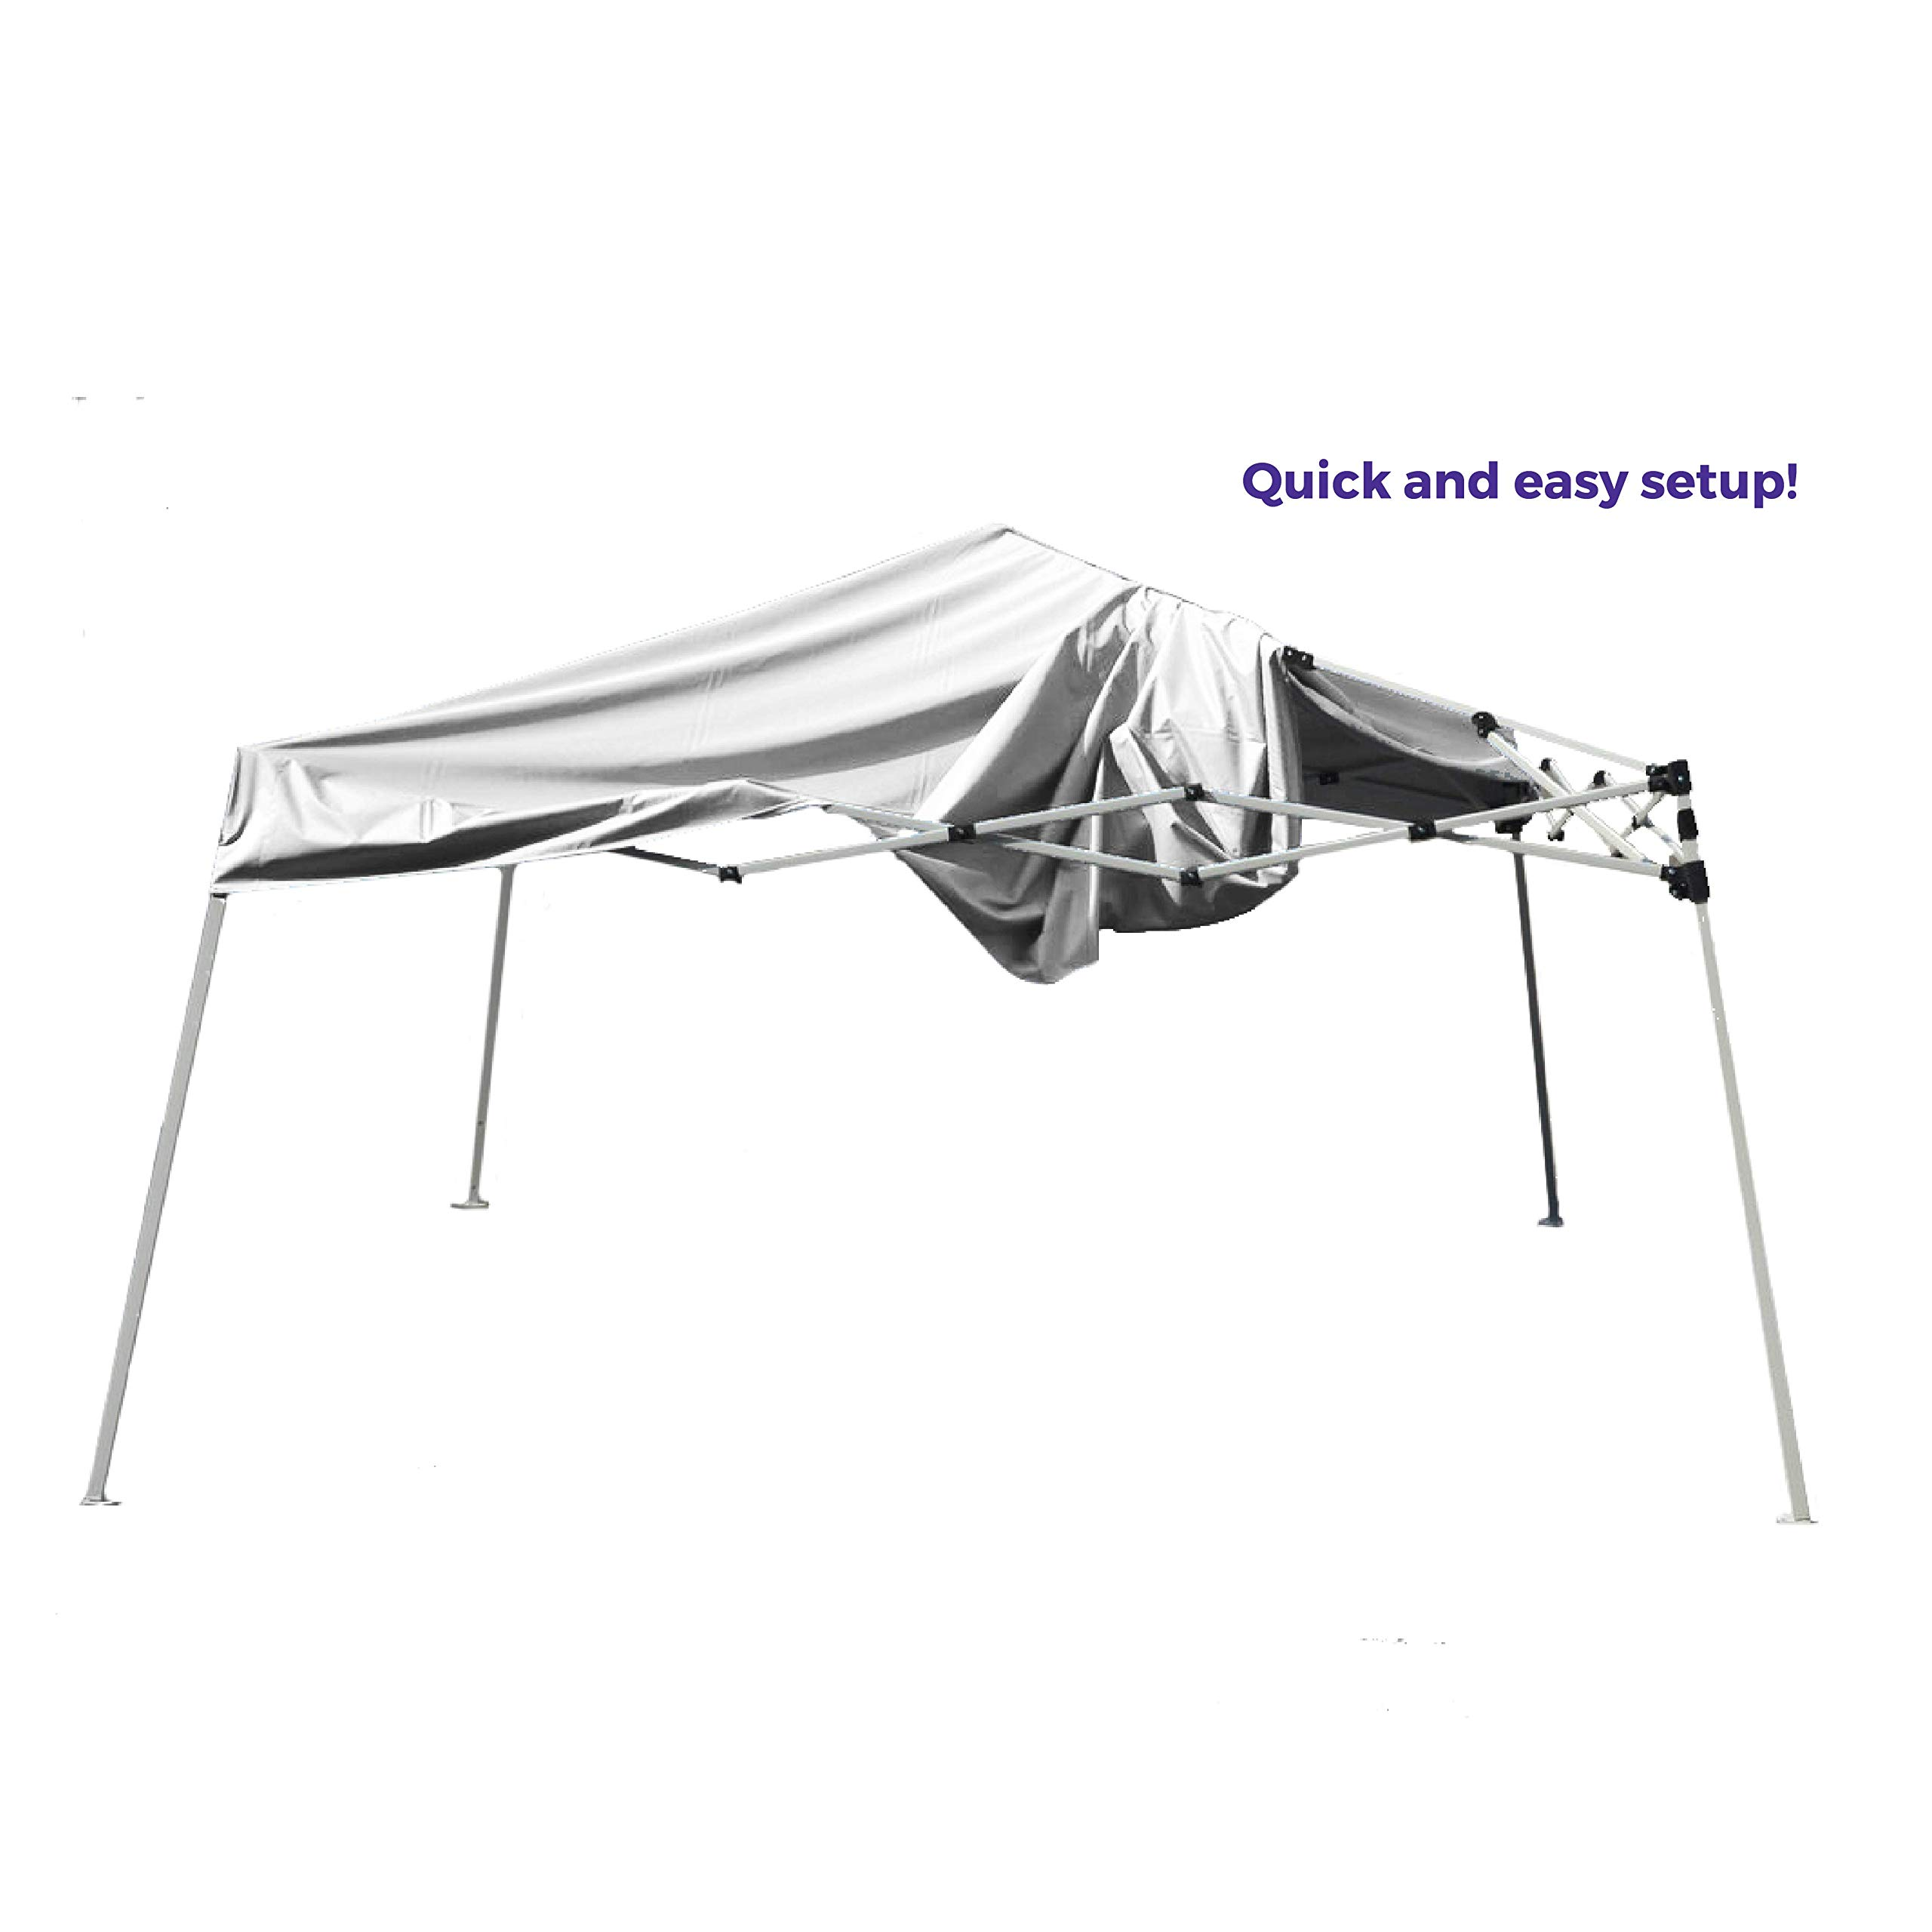 Impact Canopy 10' x 10' Pop-Up Canopy Tent, Instant Slant-Leg Portable Shade Tent with Carrying Bag, White by Impact Canopy (Image #3)